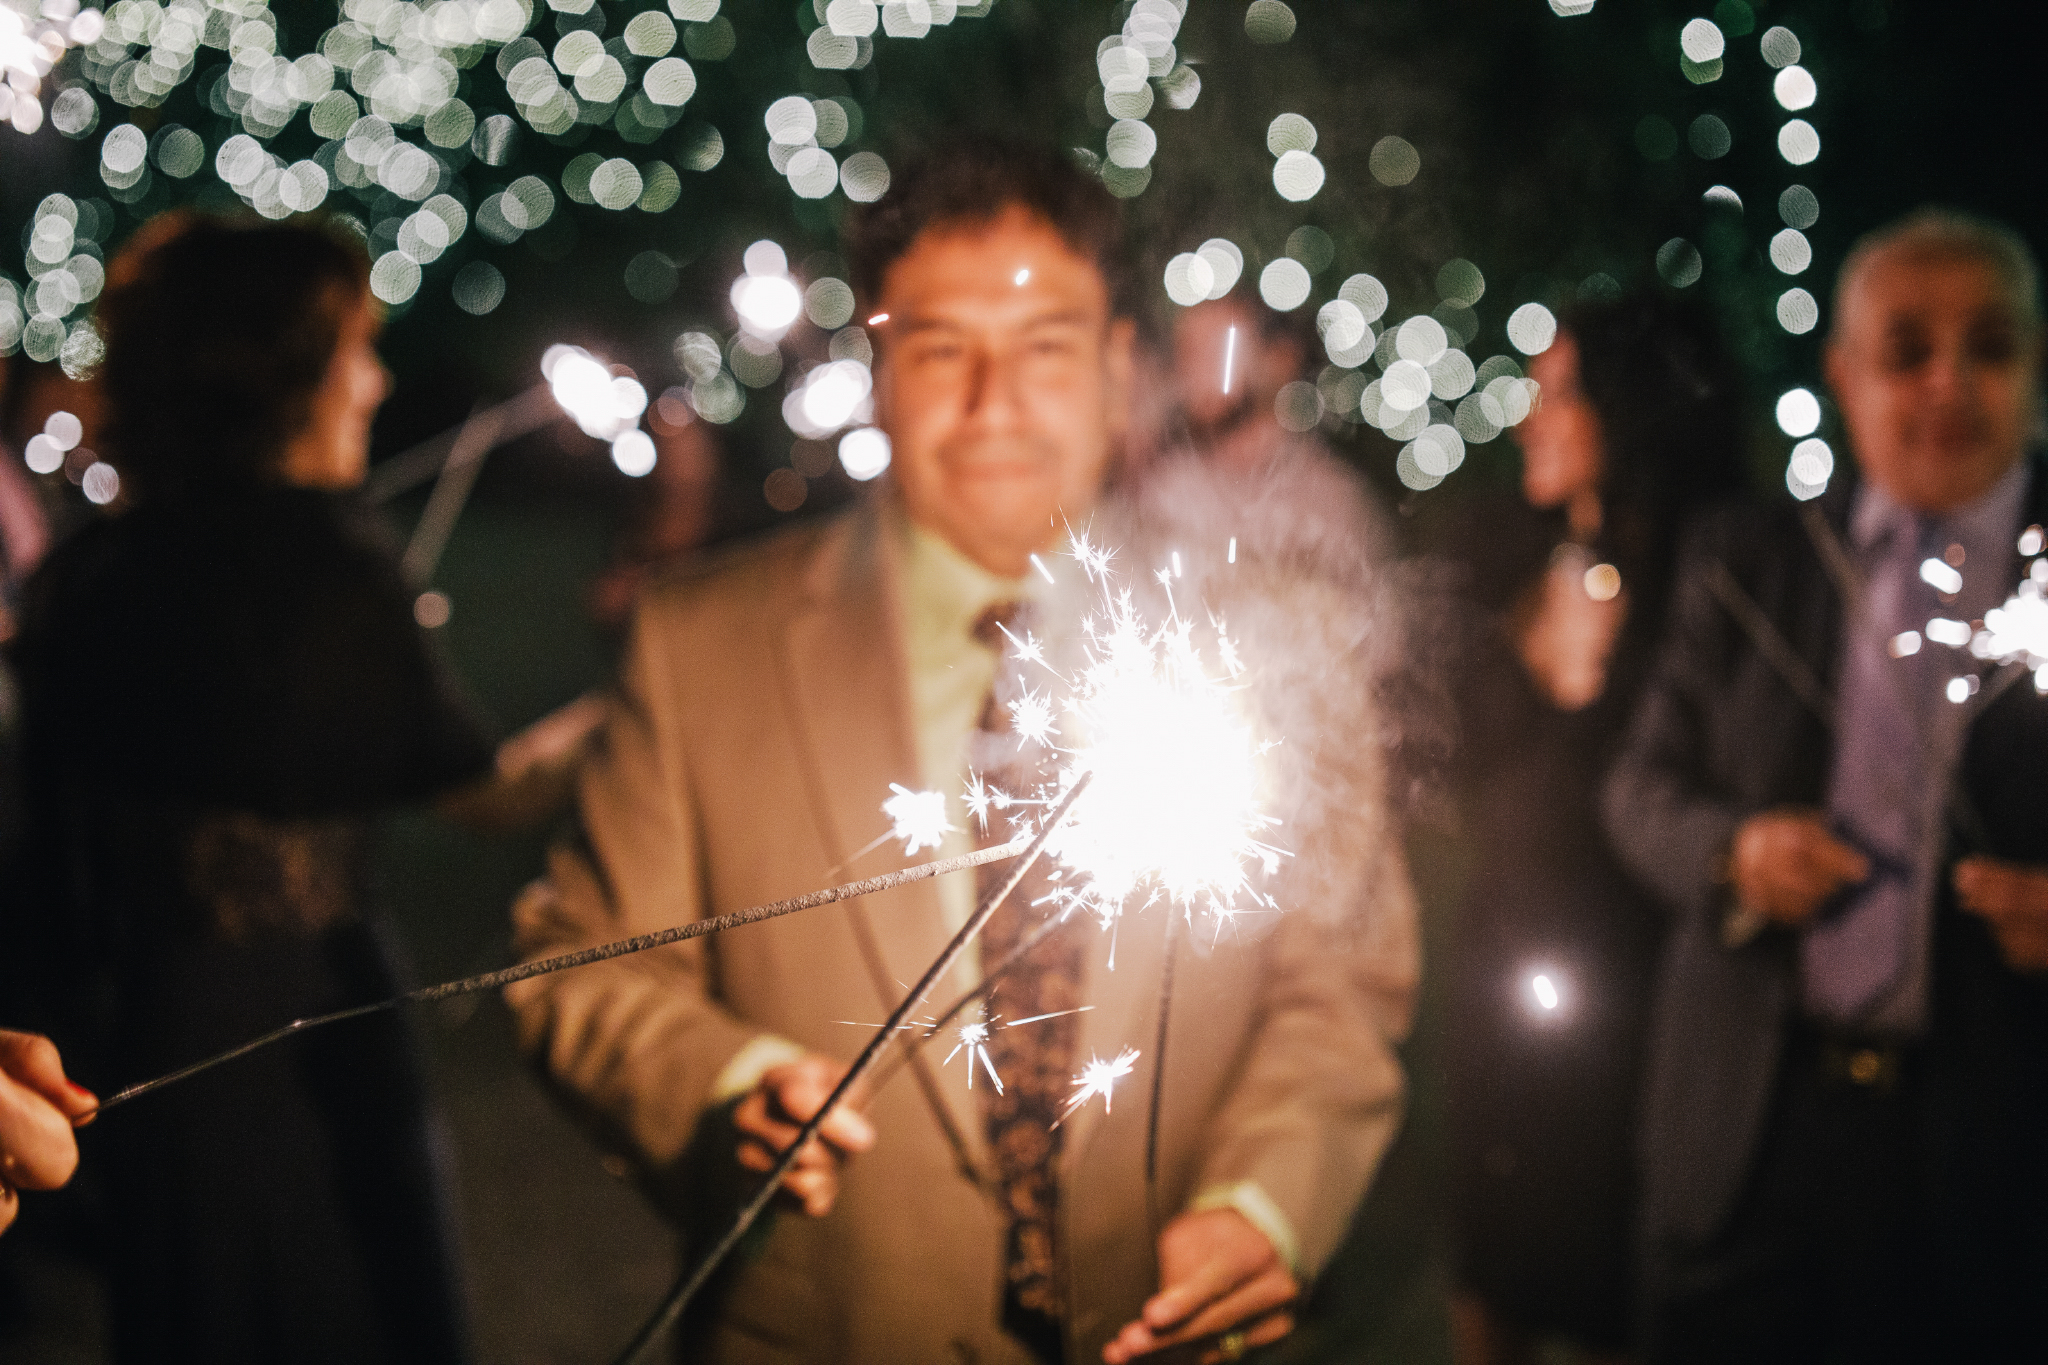 san diego wedding   photographer | sparklers lit with a crowd in background